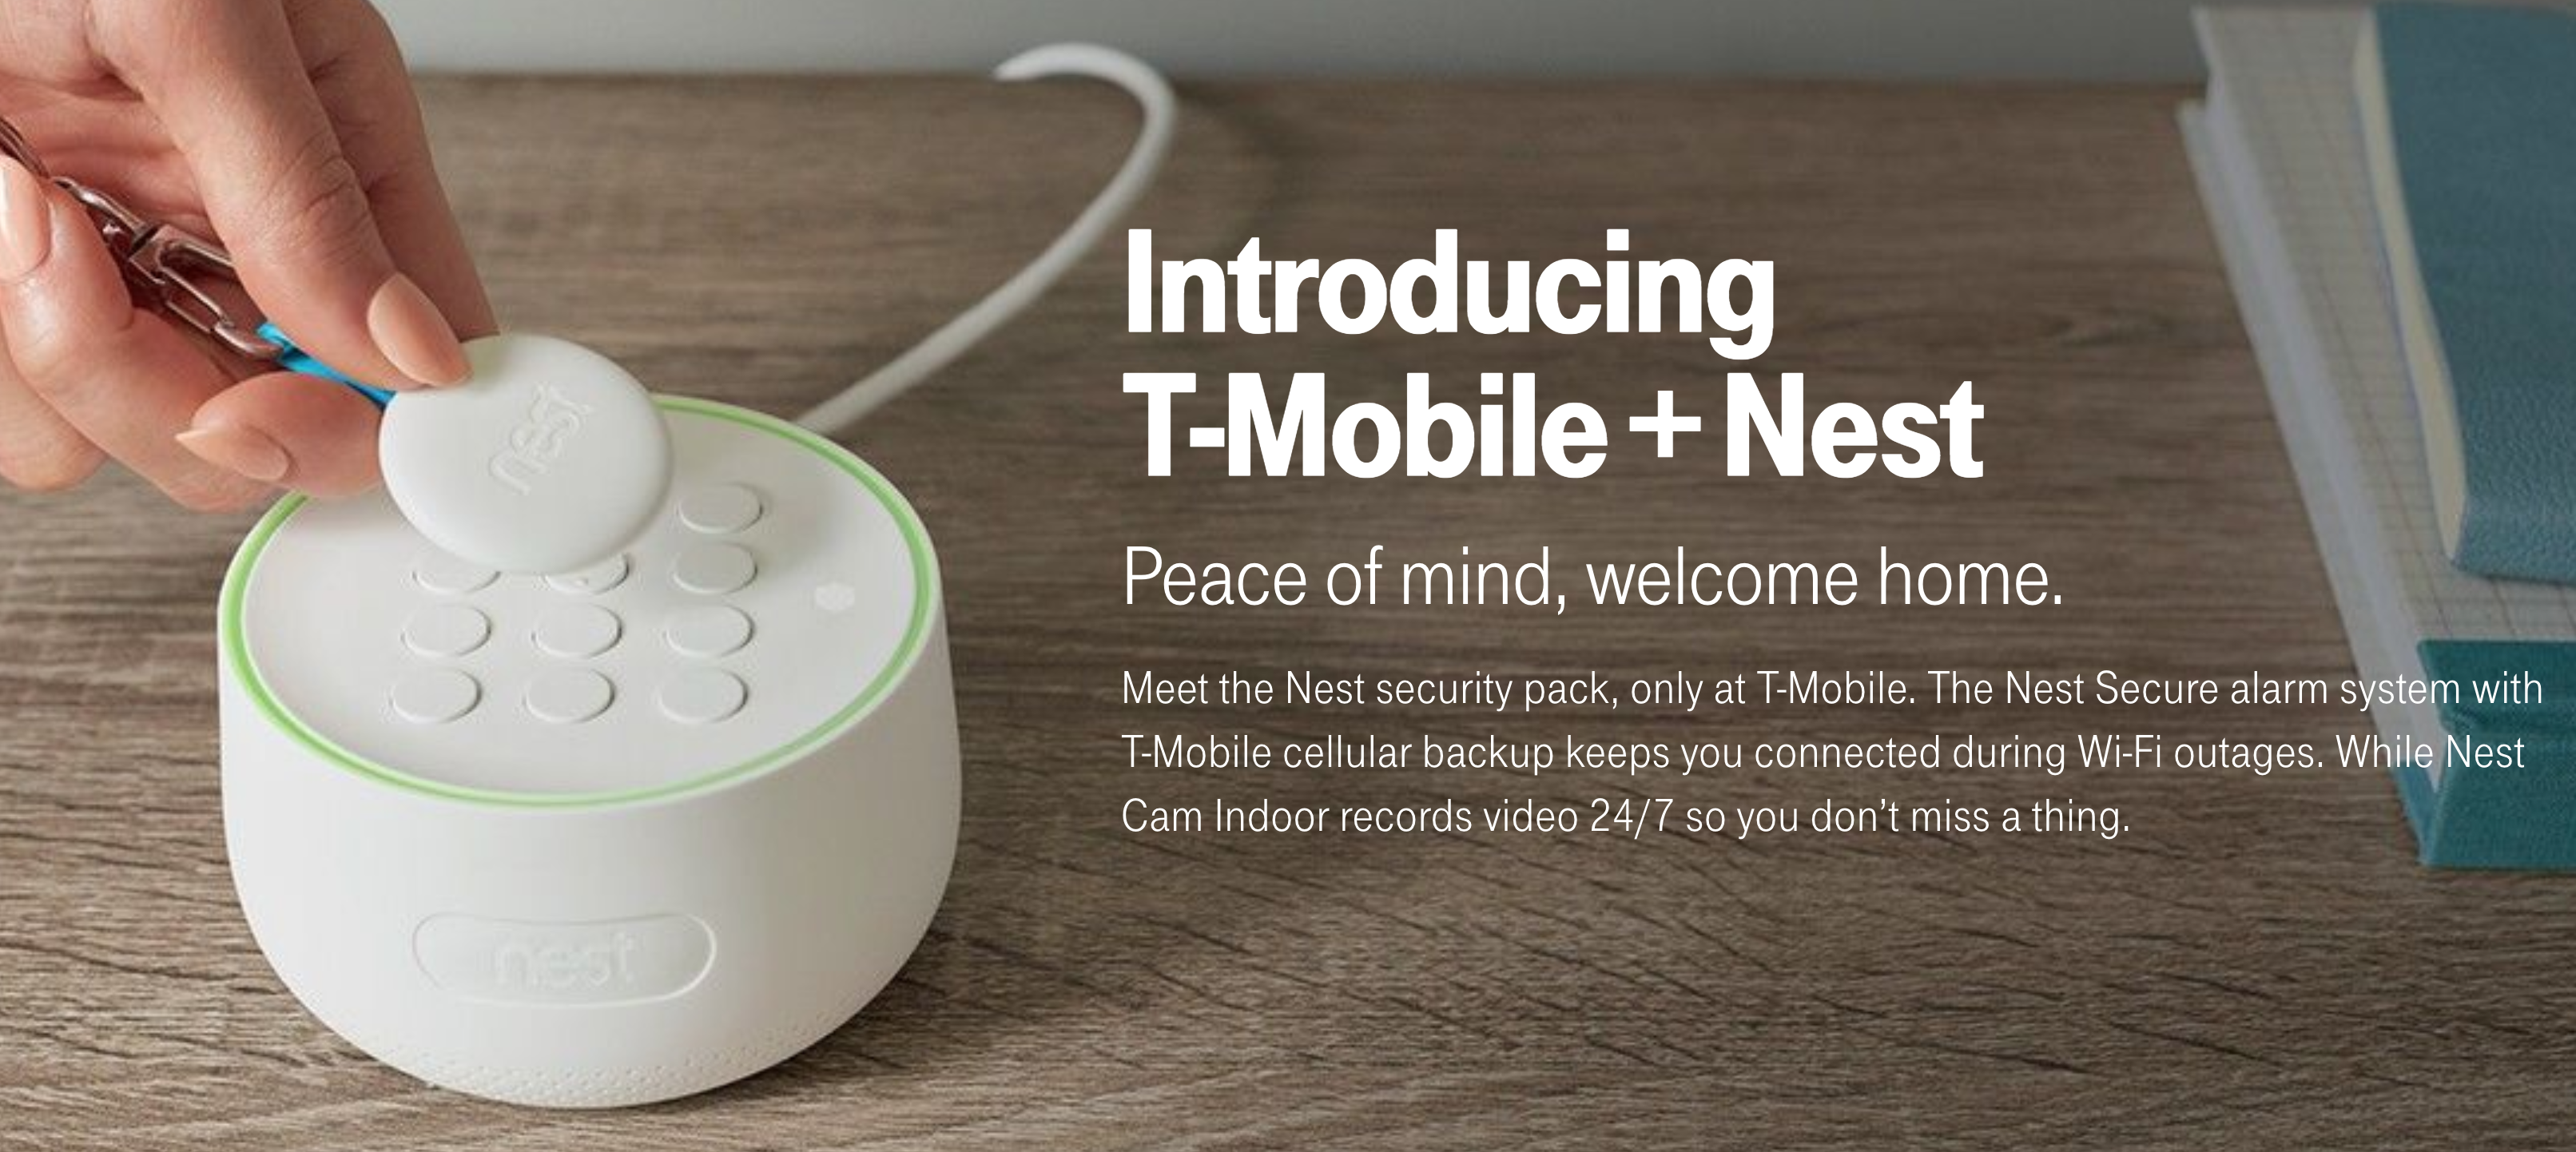 T-Mobile Nest Security Pack aims to keep your home safe all of the time